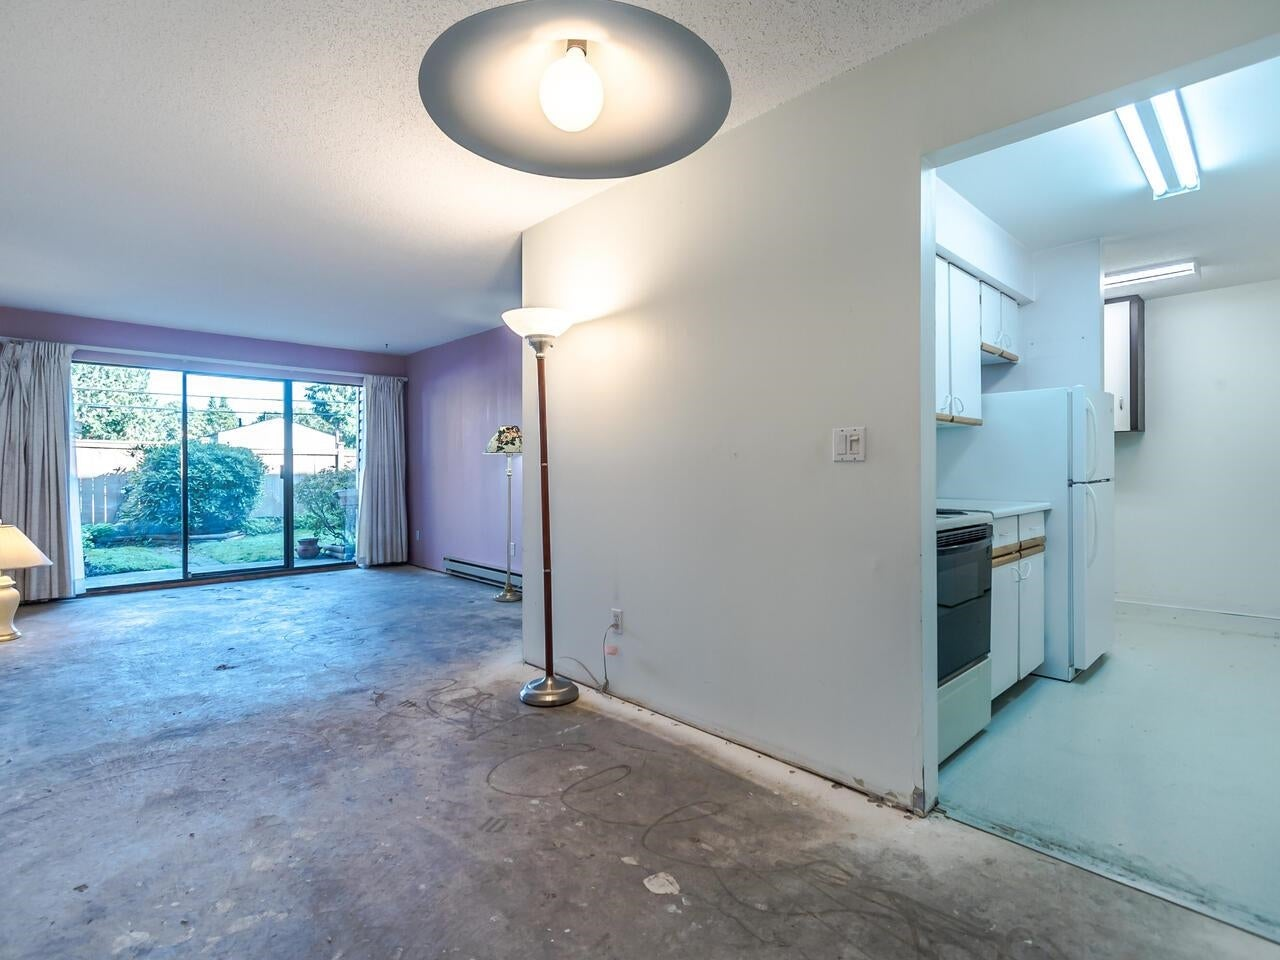 107 5191 203 STREET - Langley City Apartment/Condo for sale, 2 Bedrooms (R2625712) - #4